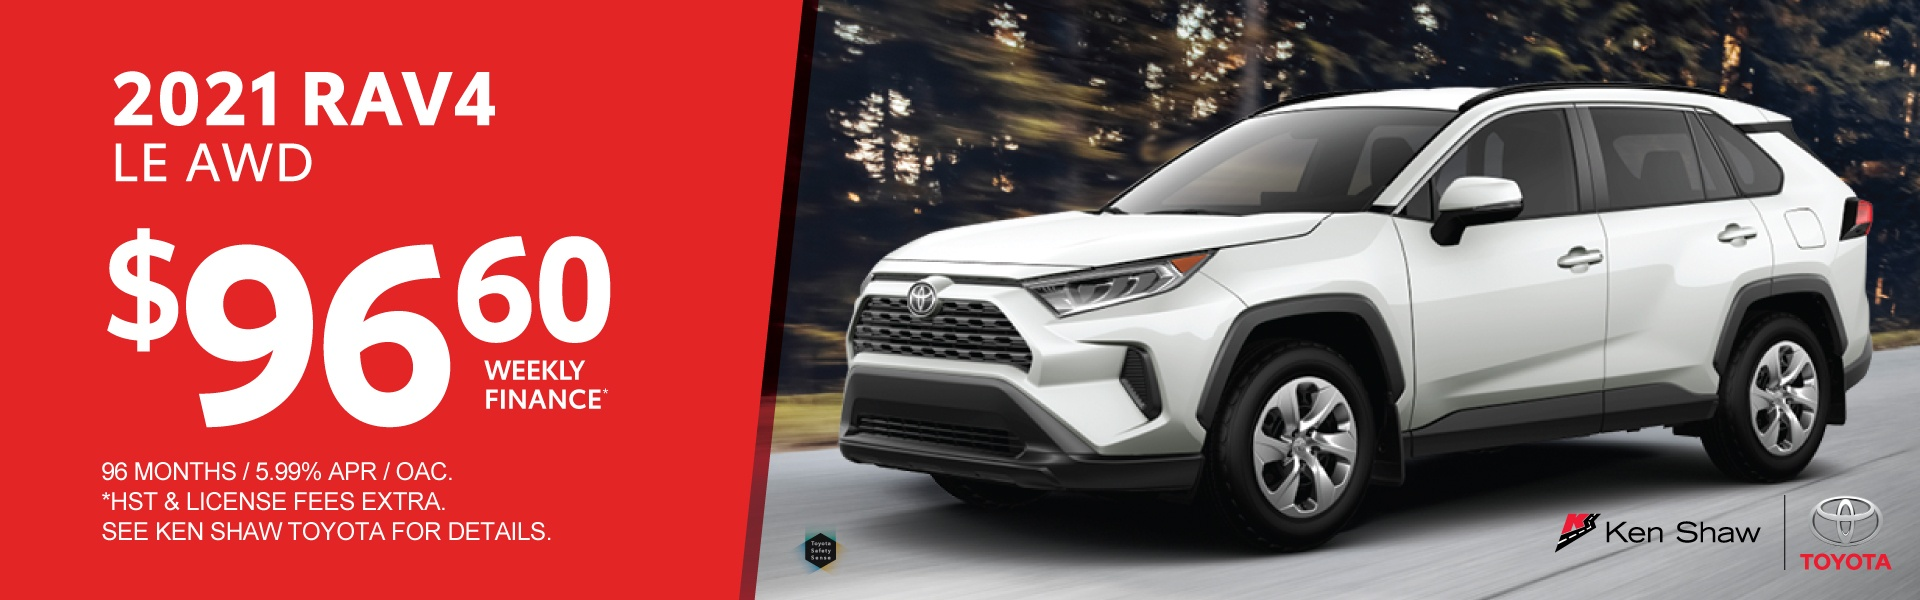 2020 2021 Toyota RAV4, Highlander and Corolla vehicles on sale in Toronto, Ontario Ken Shaw Toyota